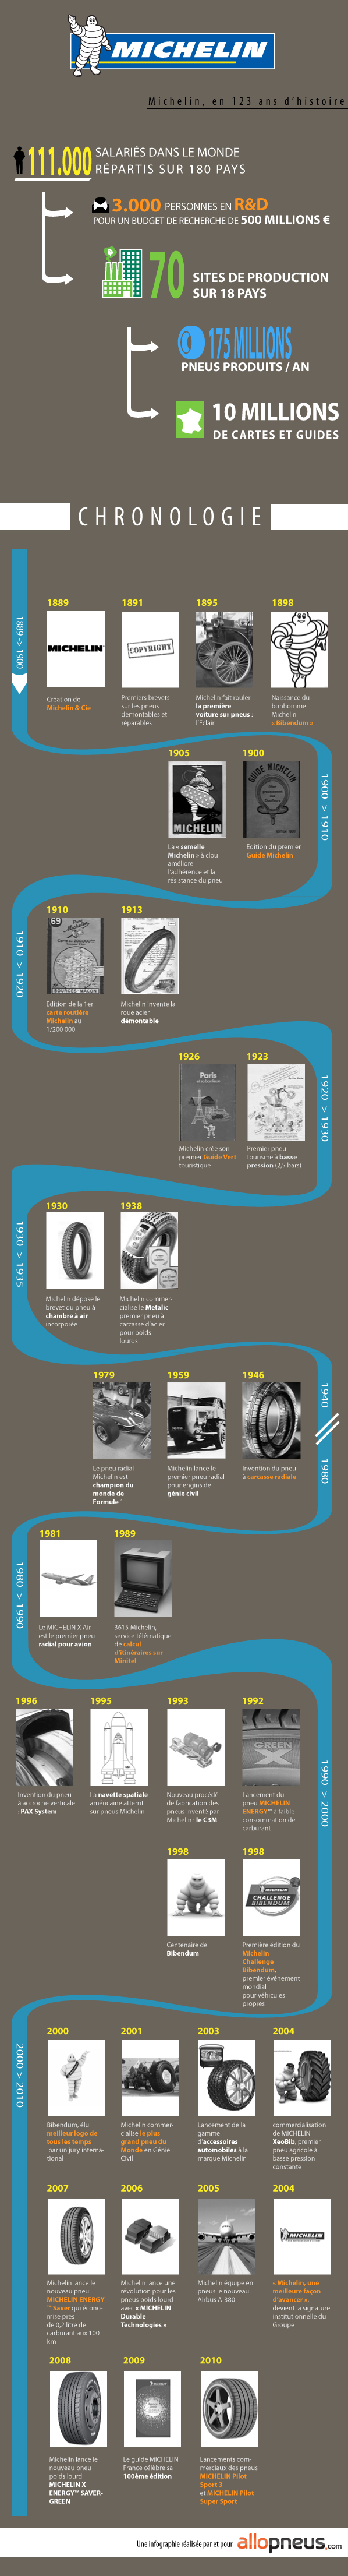 infographie-michelin-